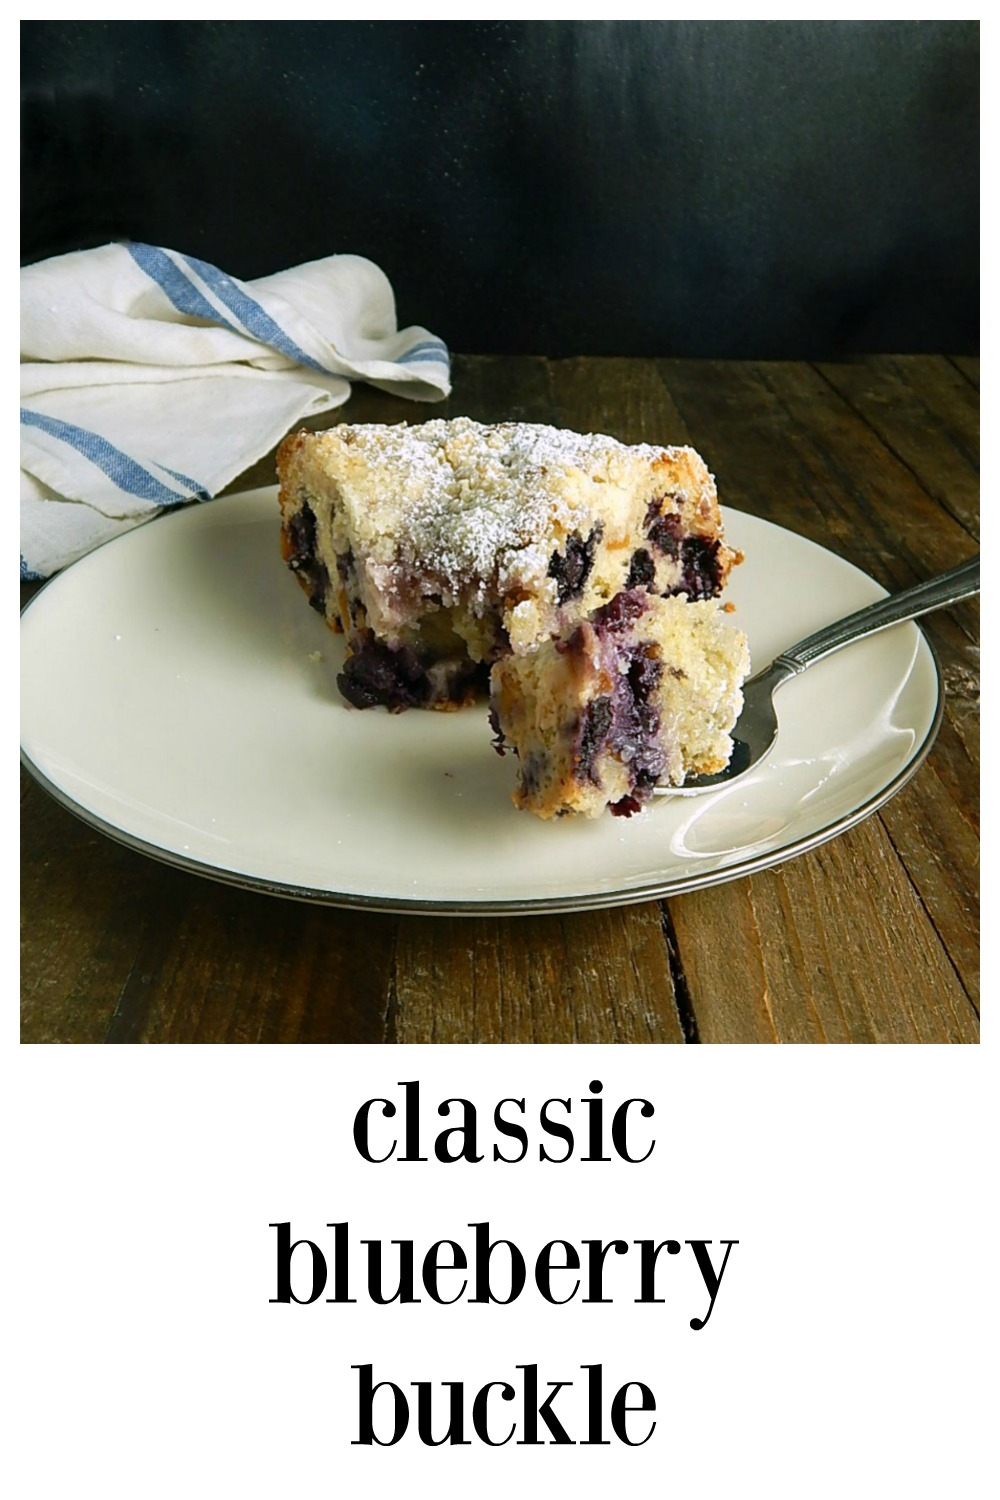 This simple Blueberry Buckle is spectacular! It's so loaded with berries you literally can't get any more in! This is moist inside, almost custardy. And the streusel topping takes it over the top. Easy to make. #BlueberryBuckle #FruitBuckle #CooksIllustratedBuckle #FruitDesserts #CoffeeCake #BlueberryCoffeeCake #SumerDessert #FallDesserts